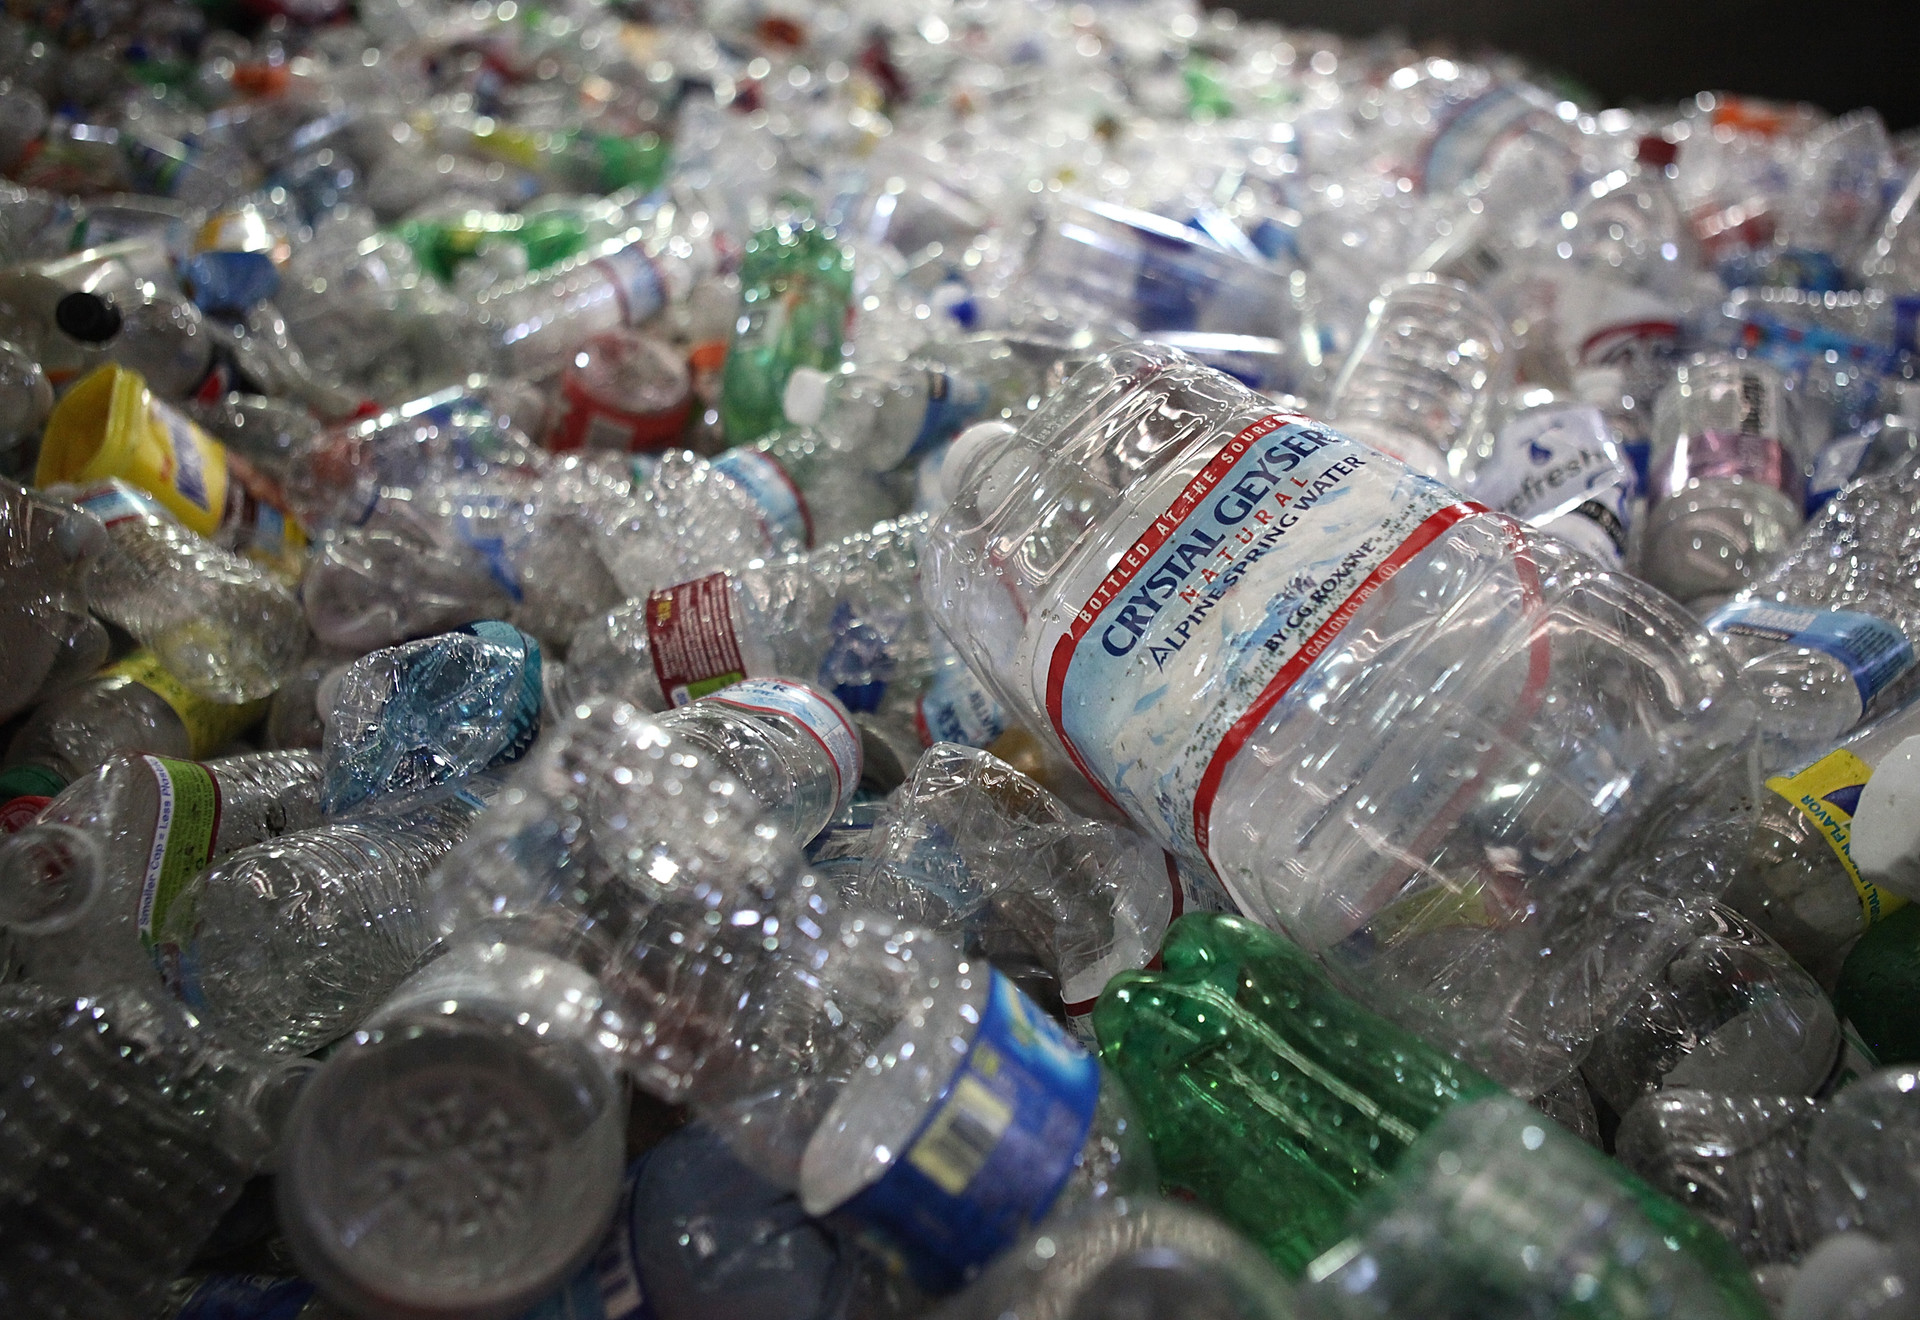 Business is Booming, But Public Anger Toward Plastics Grows With Environmental Harms